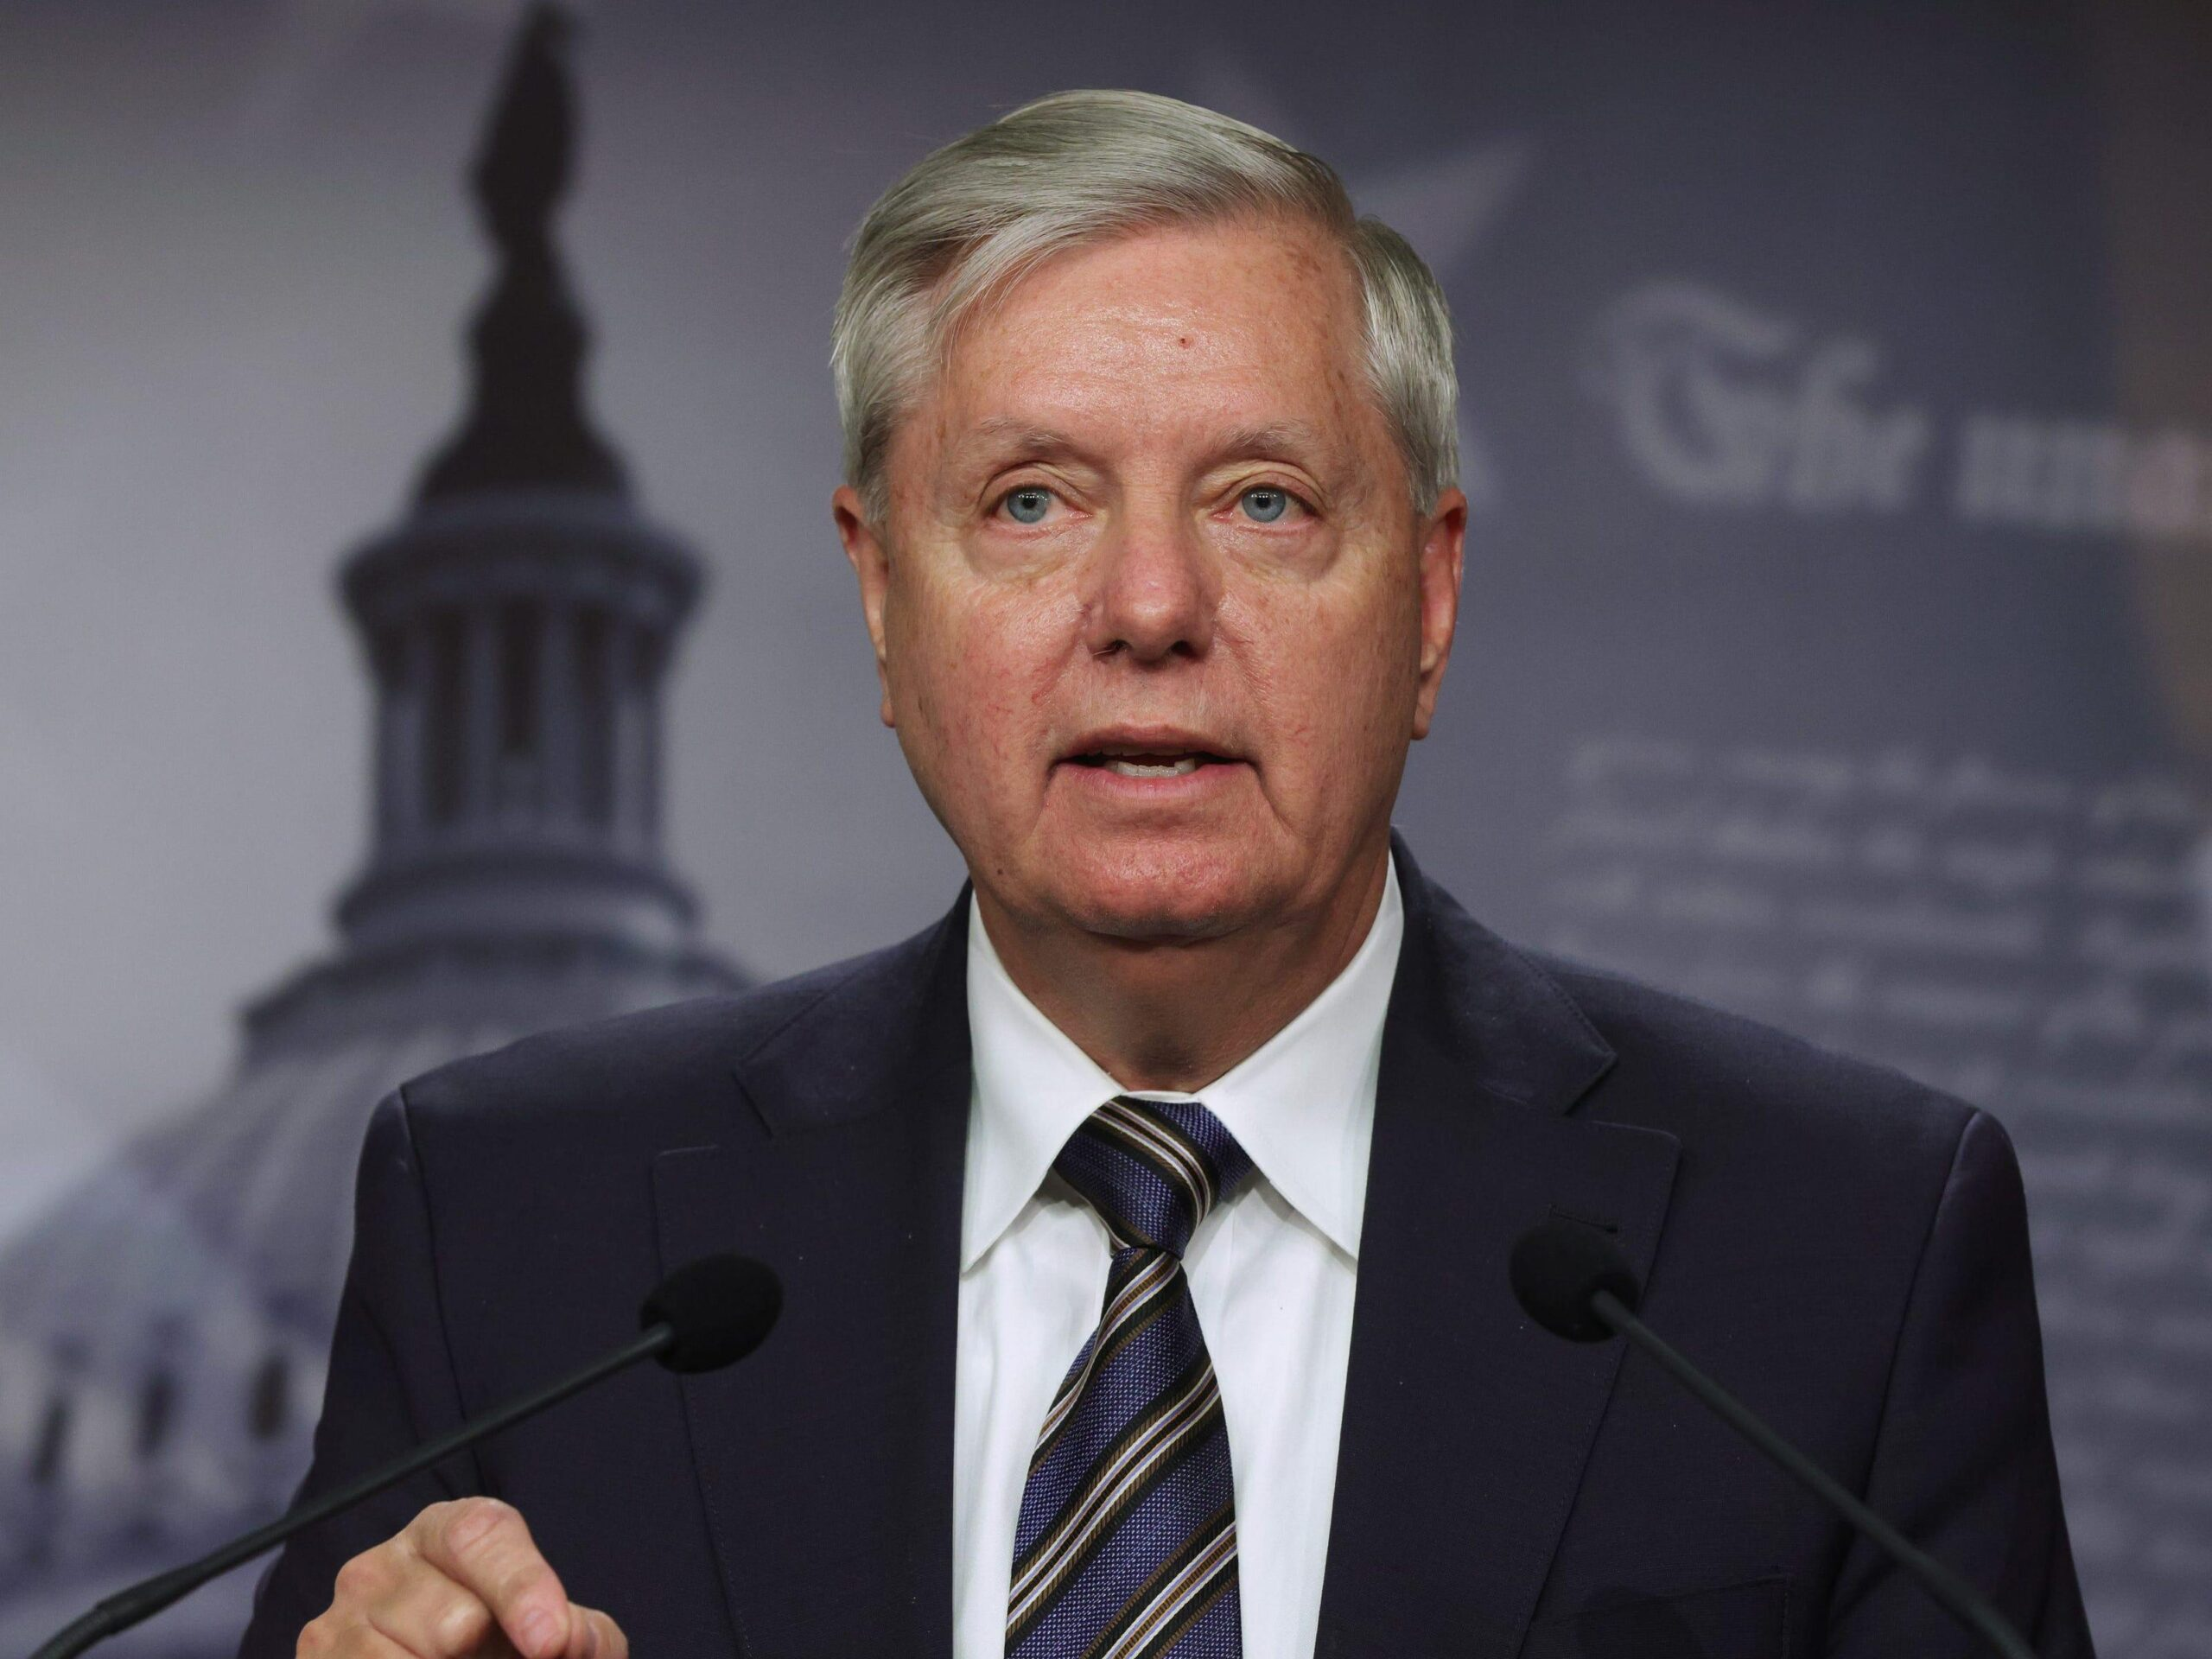 Lindsey Graham says voting for this bill will 'screw' corporate America